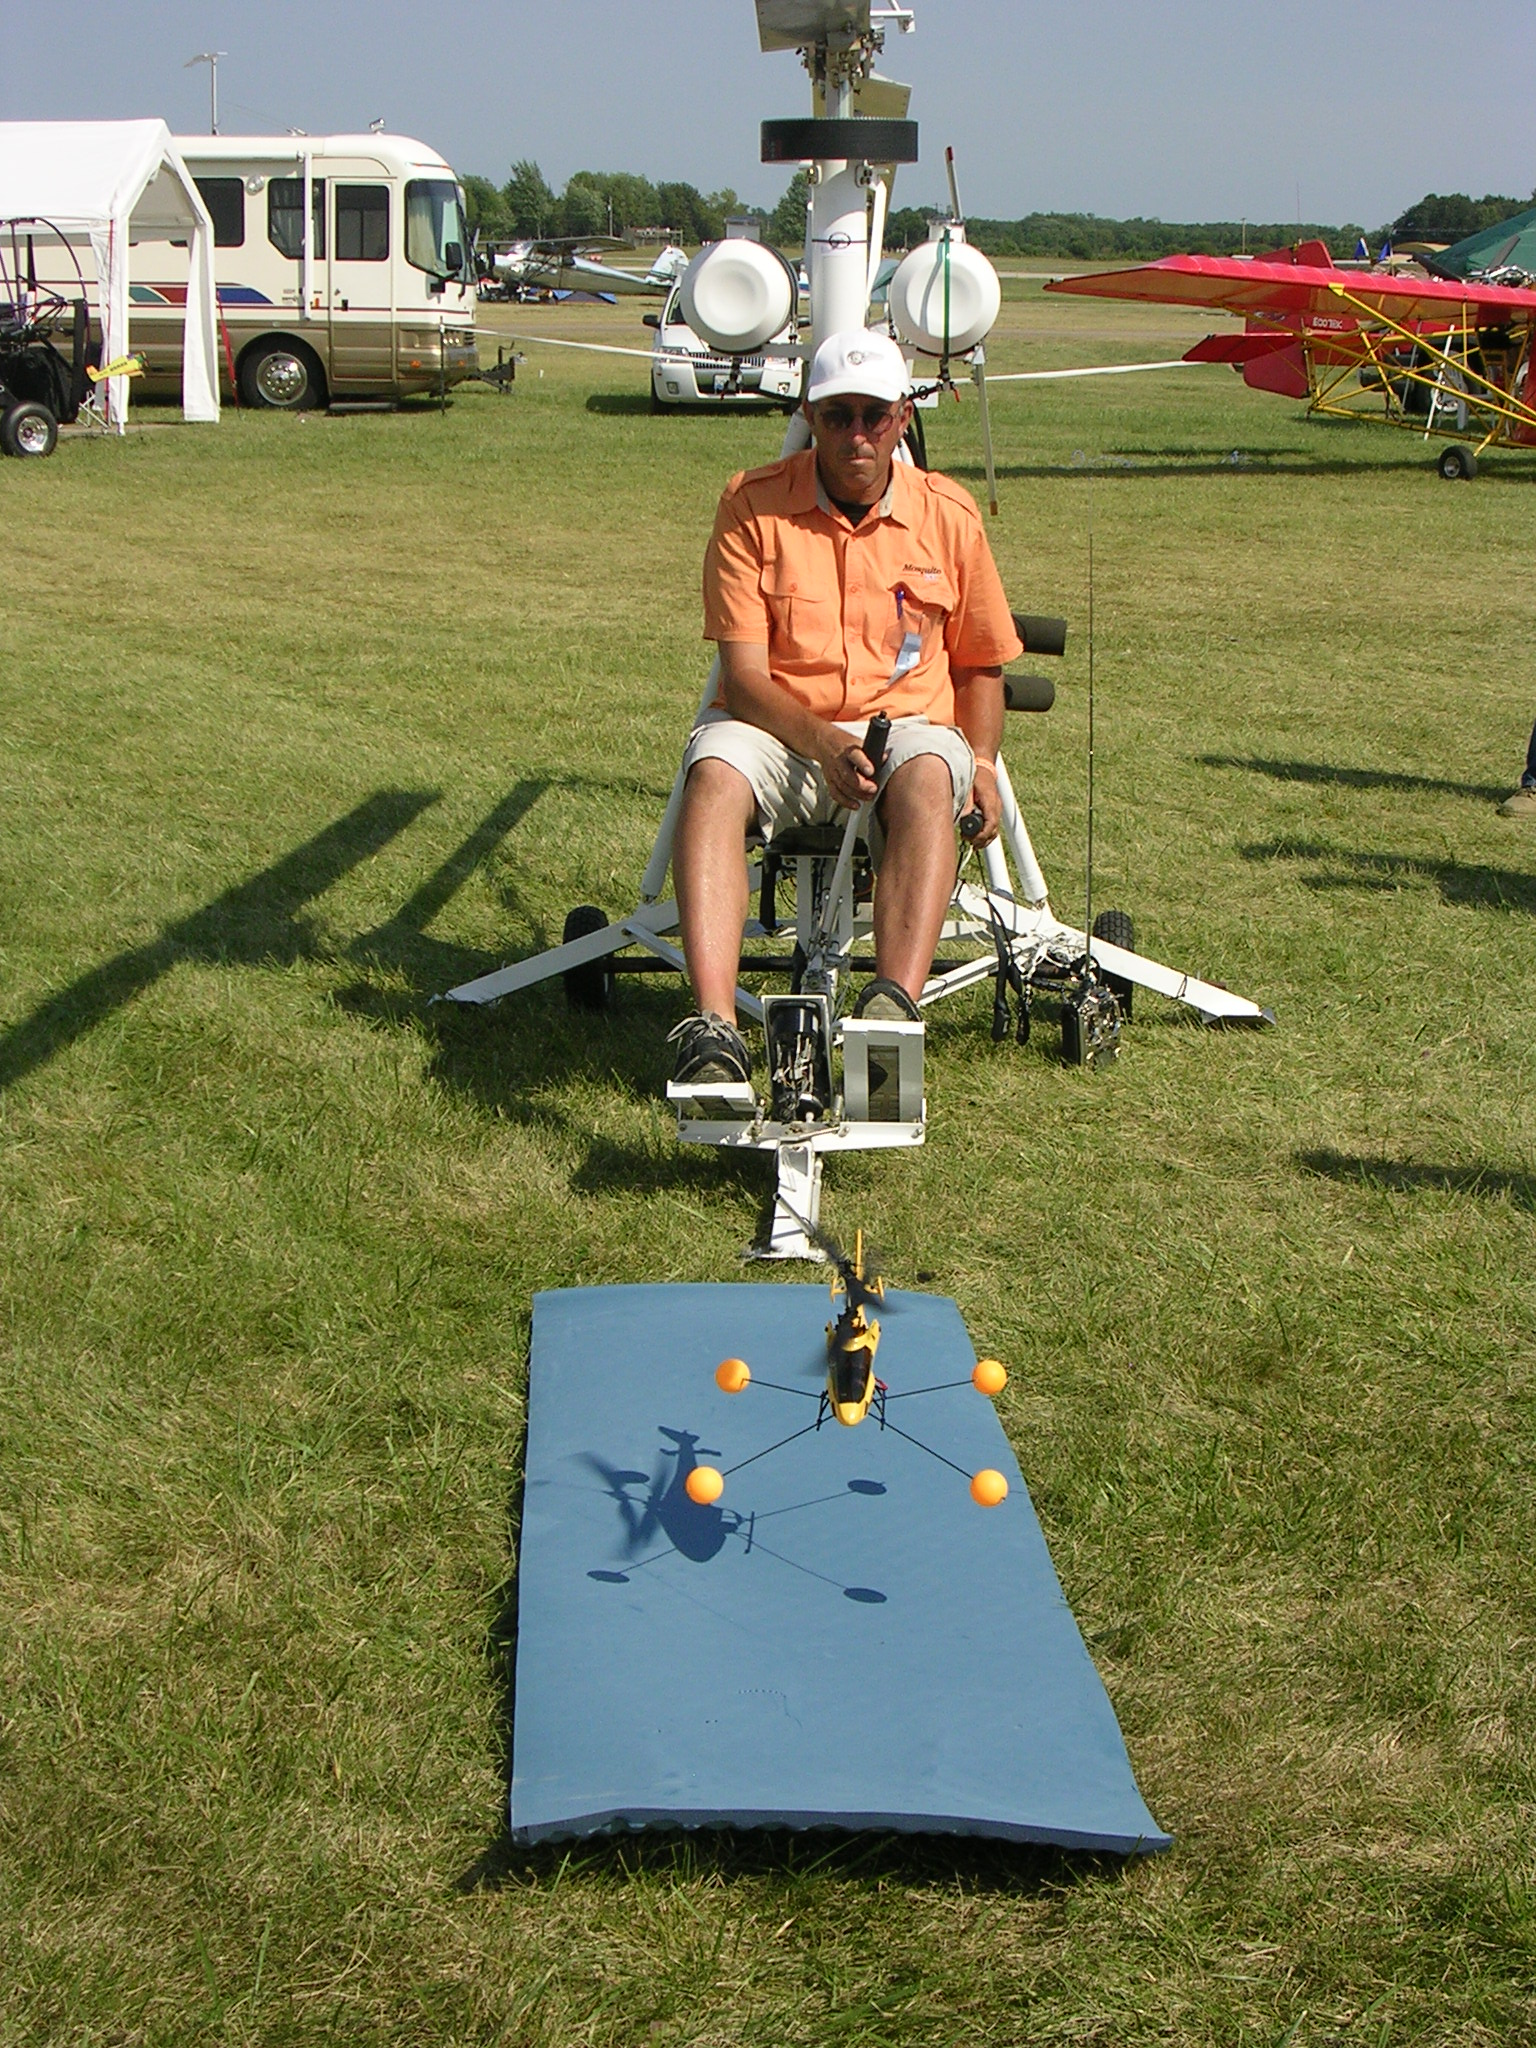 Helicopter flight training device, Heli-Chair, helichair